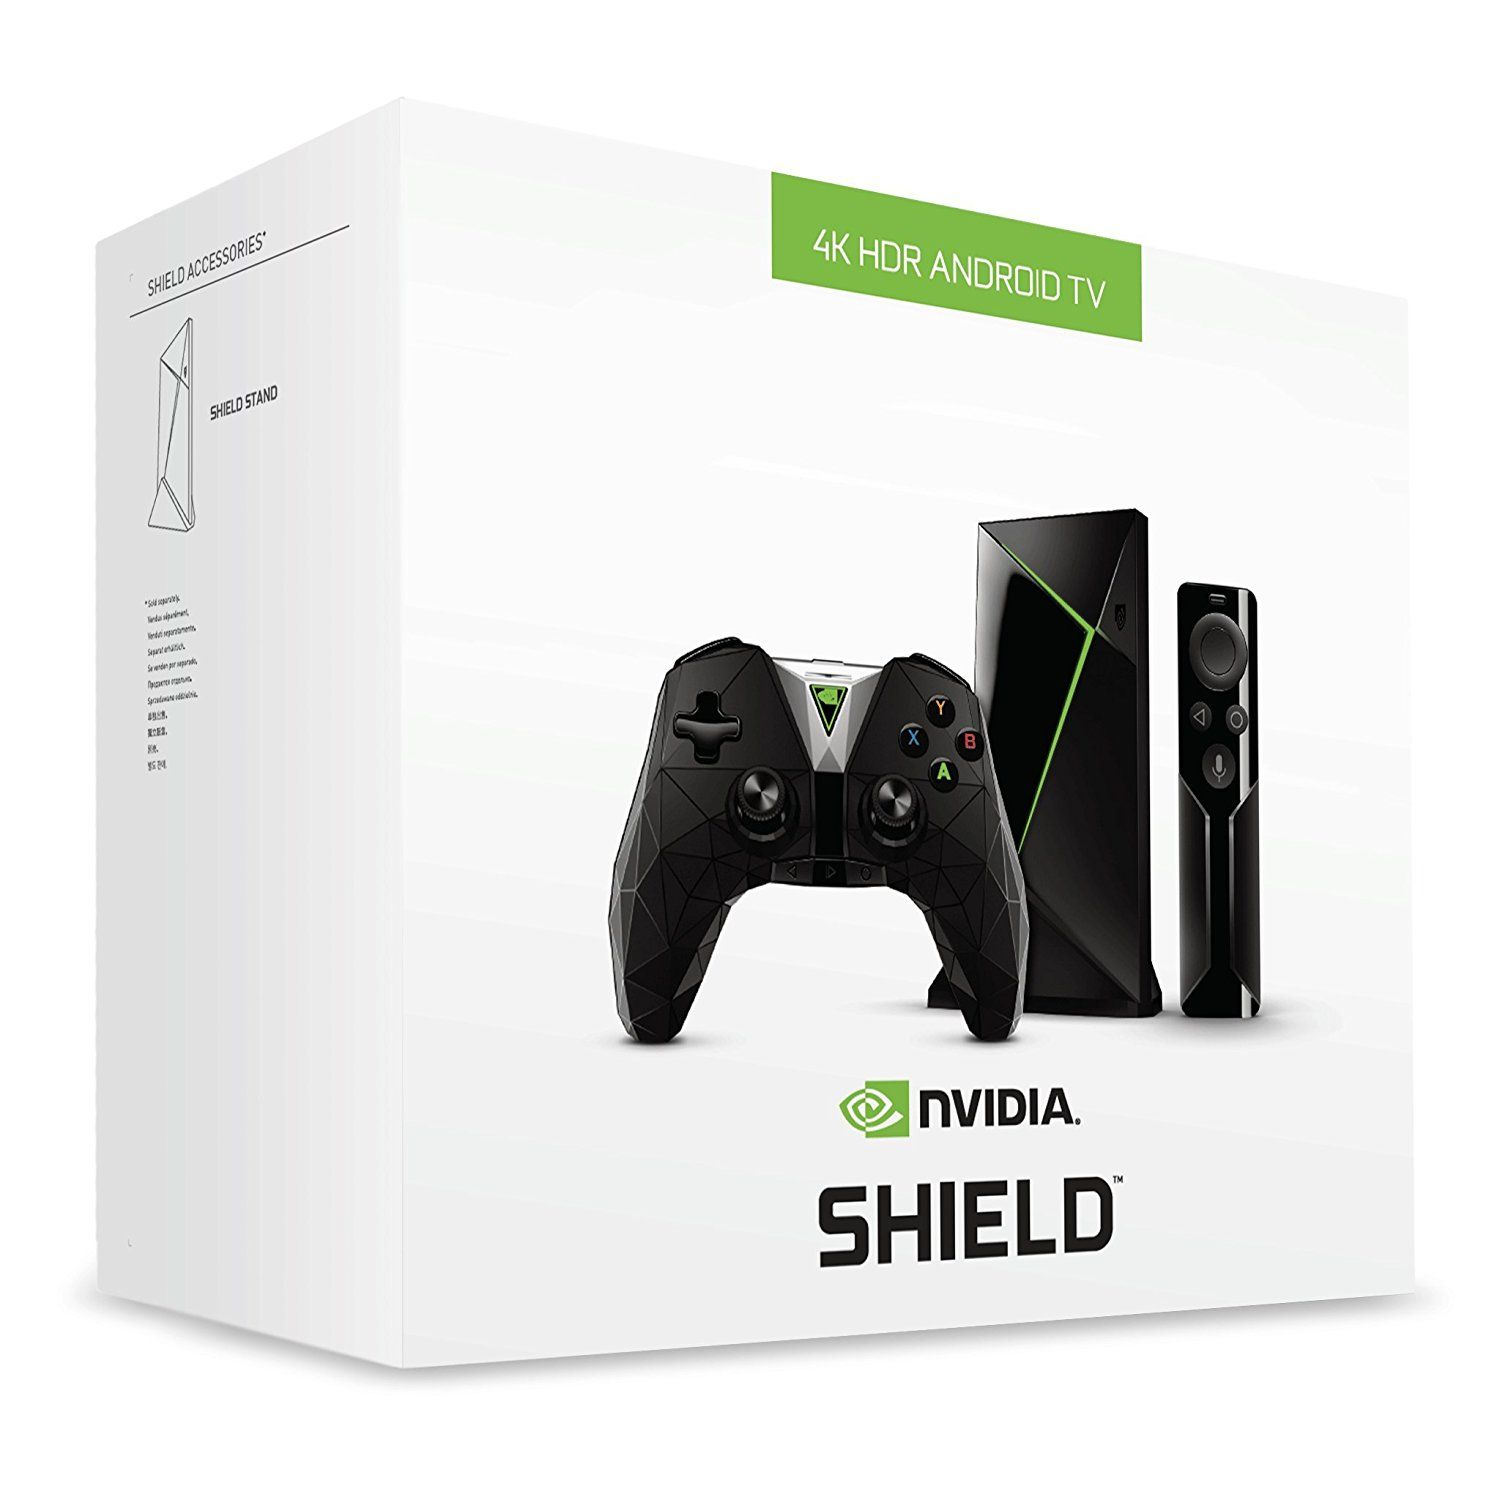 Amazon.com: NVIDIA SHIELD TV Streaming Media Player: Video Games ...